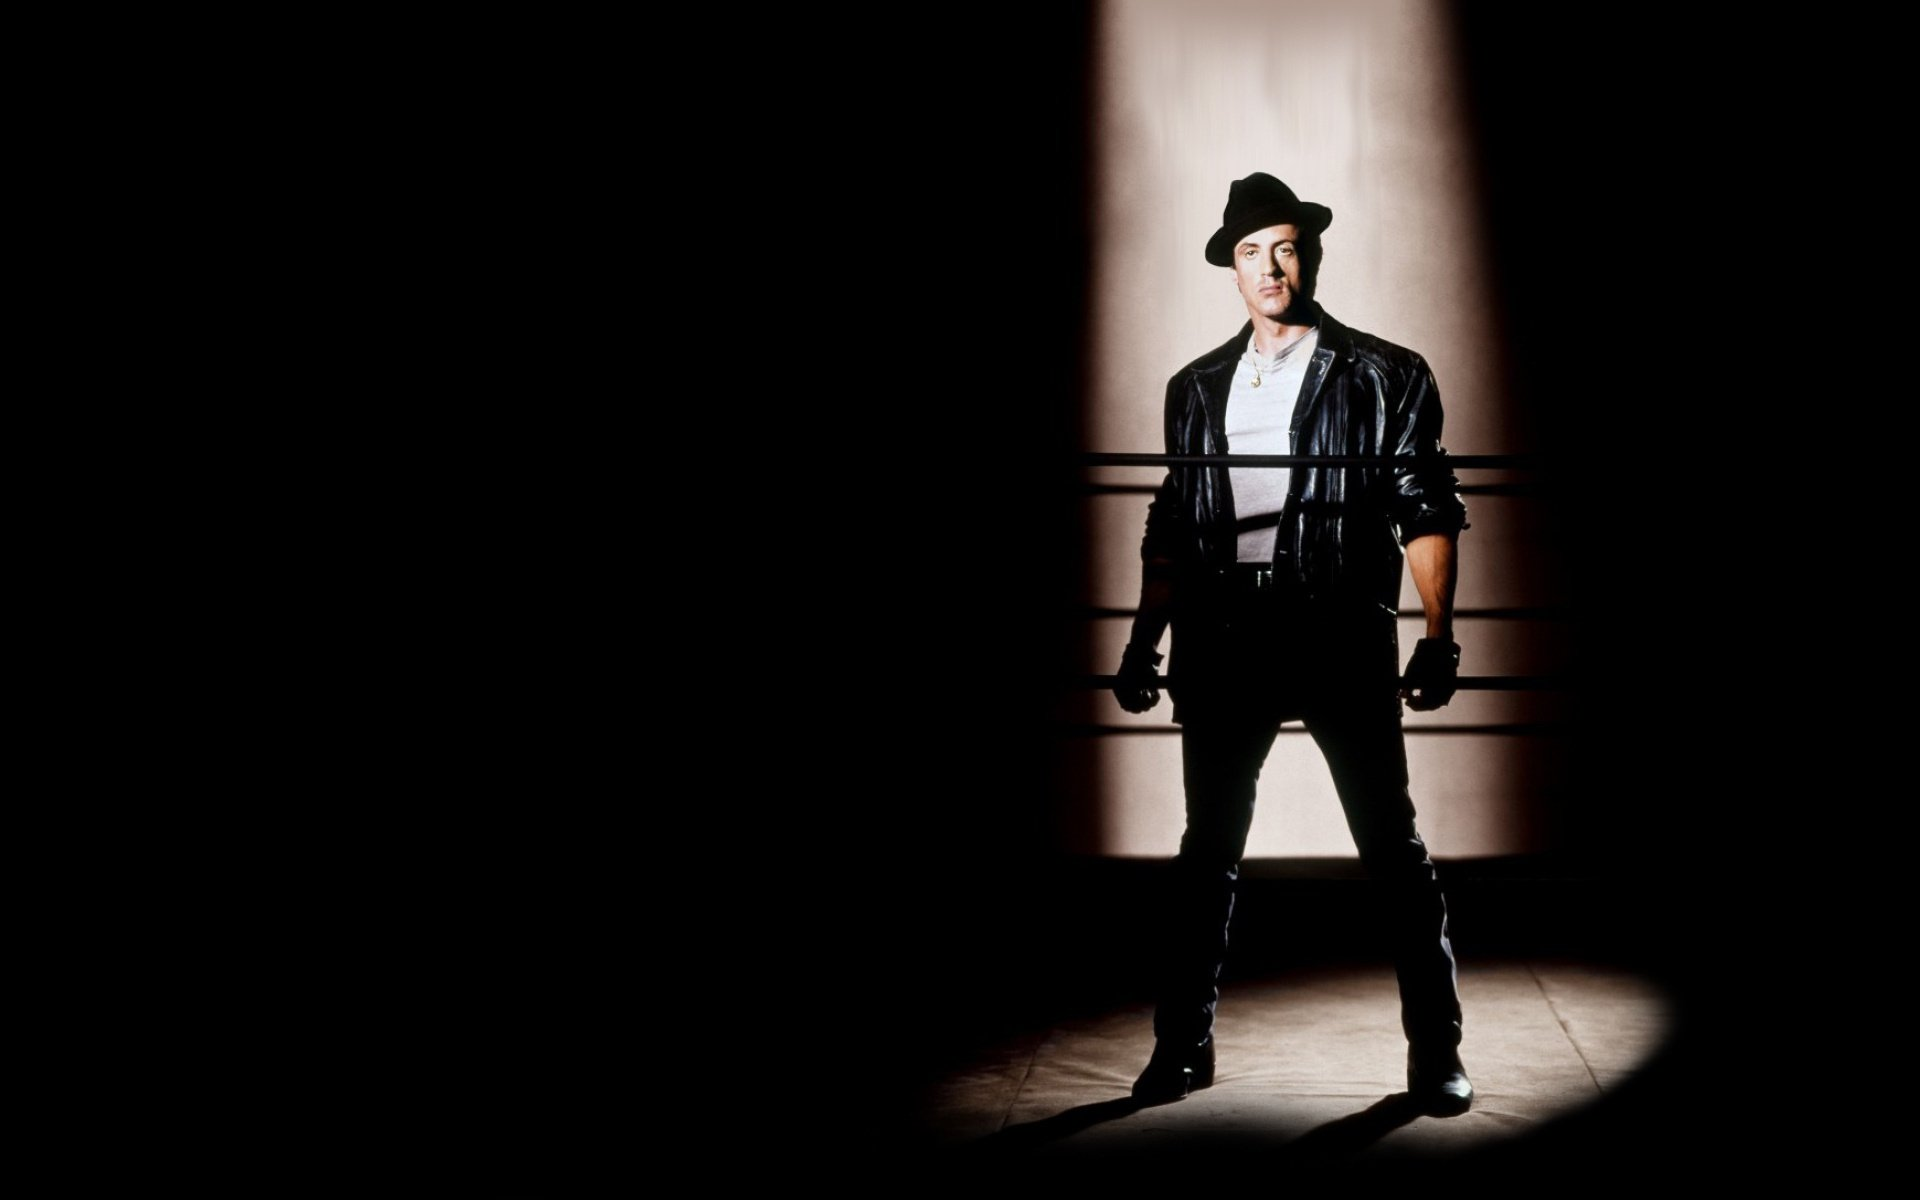 1920x1200 - Sylvester Stallone Wallpapers 19